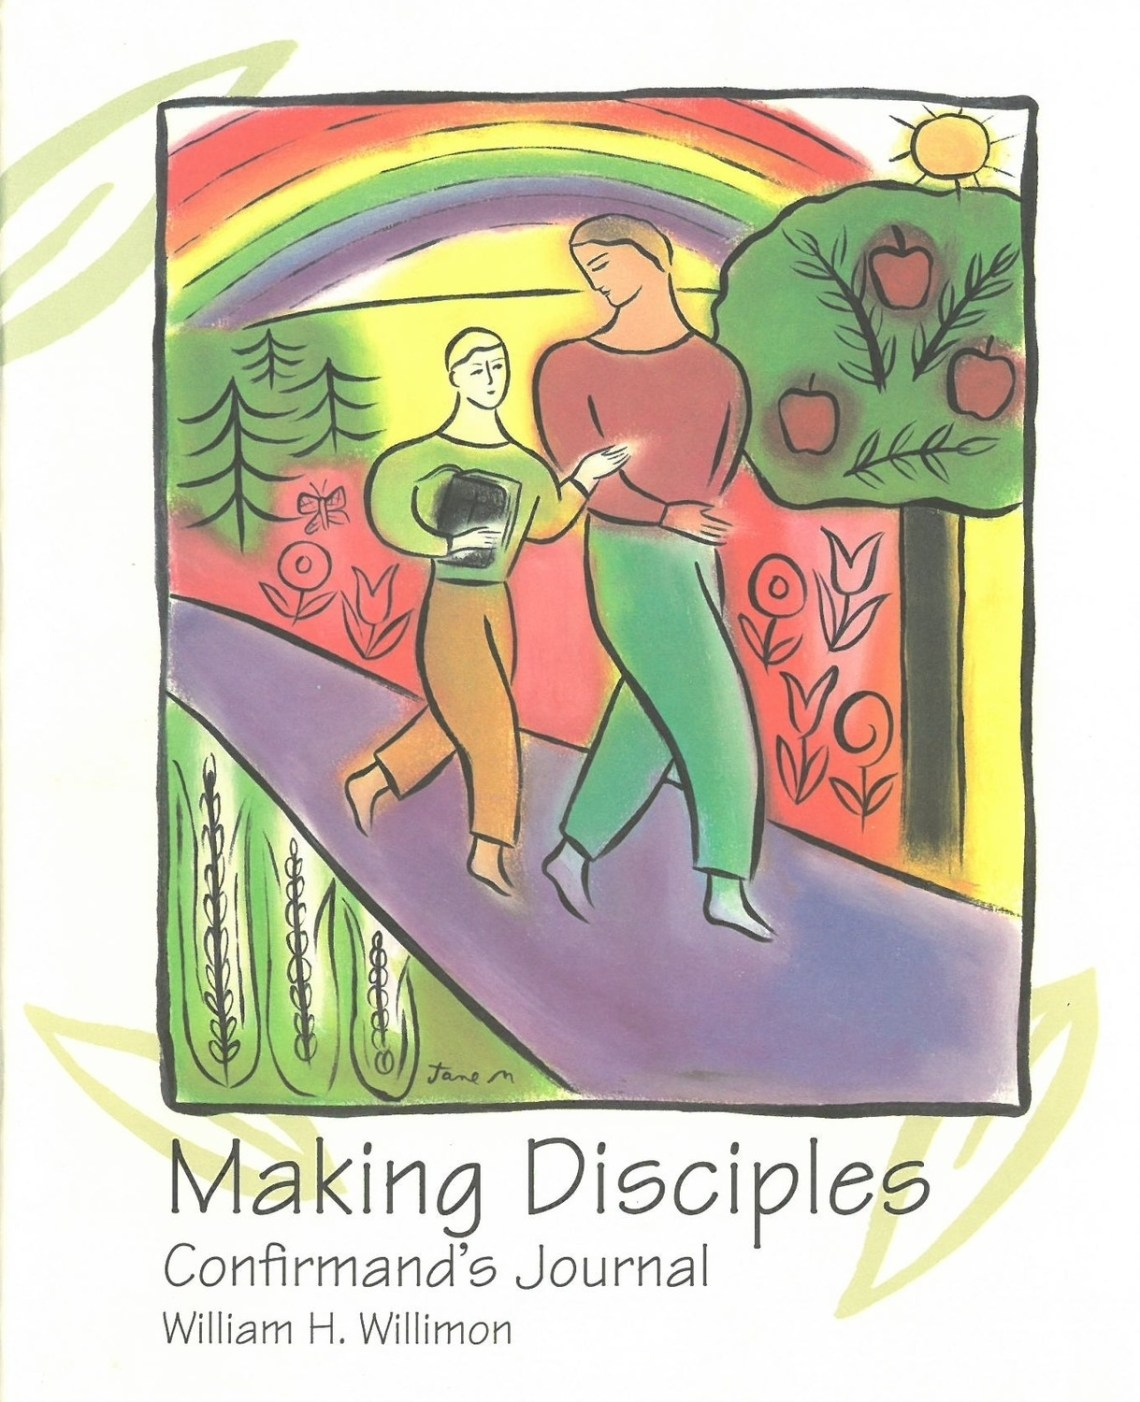 Making Disciples: Confirmand's Journal - William H. Willimon